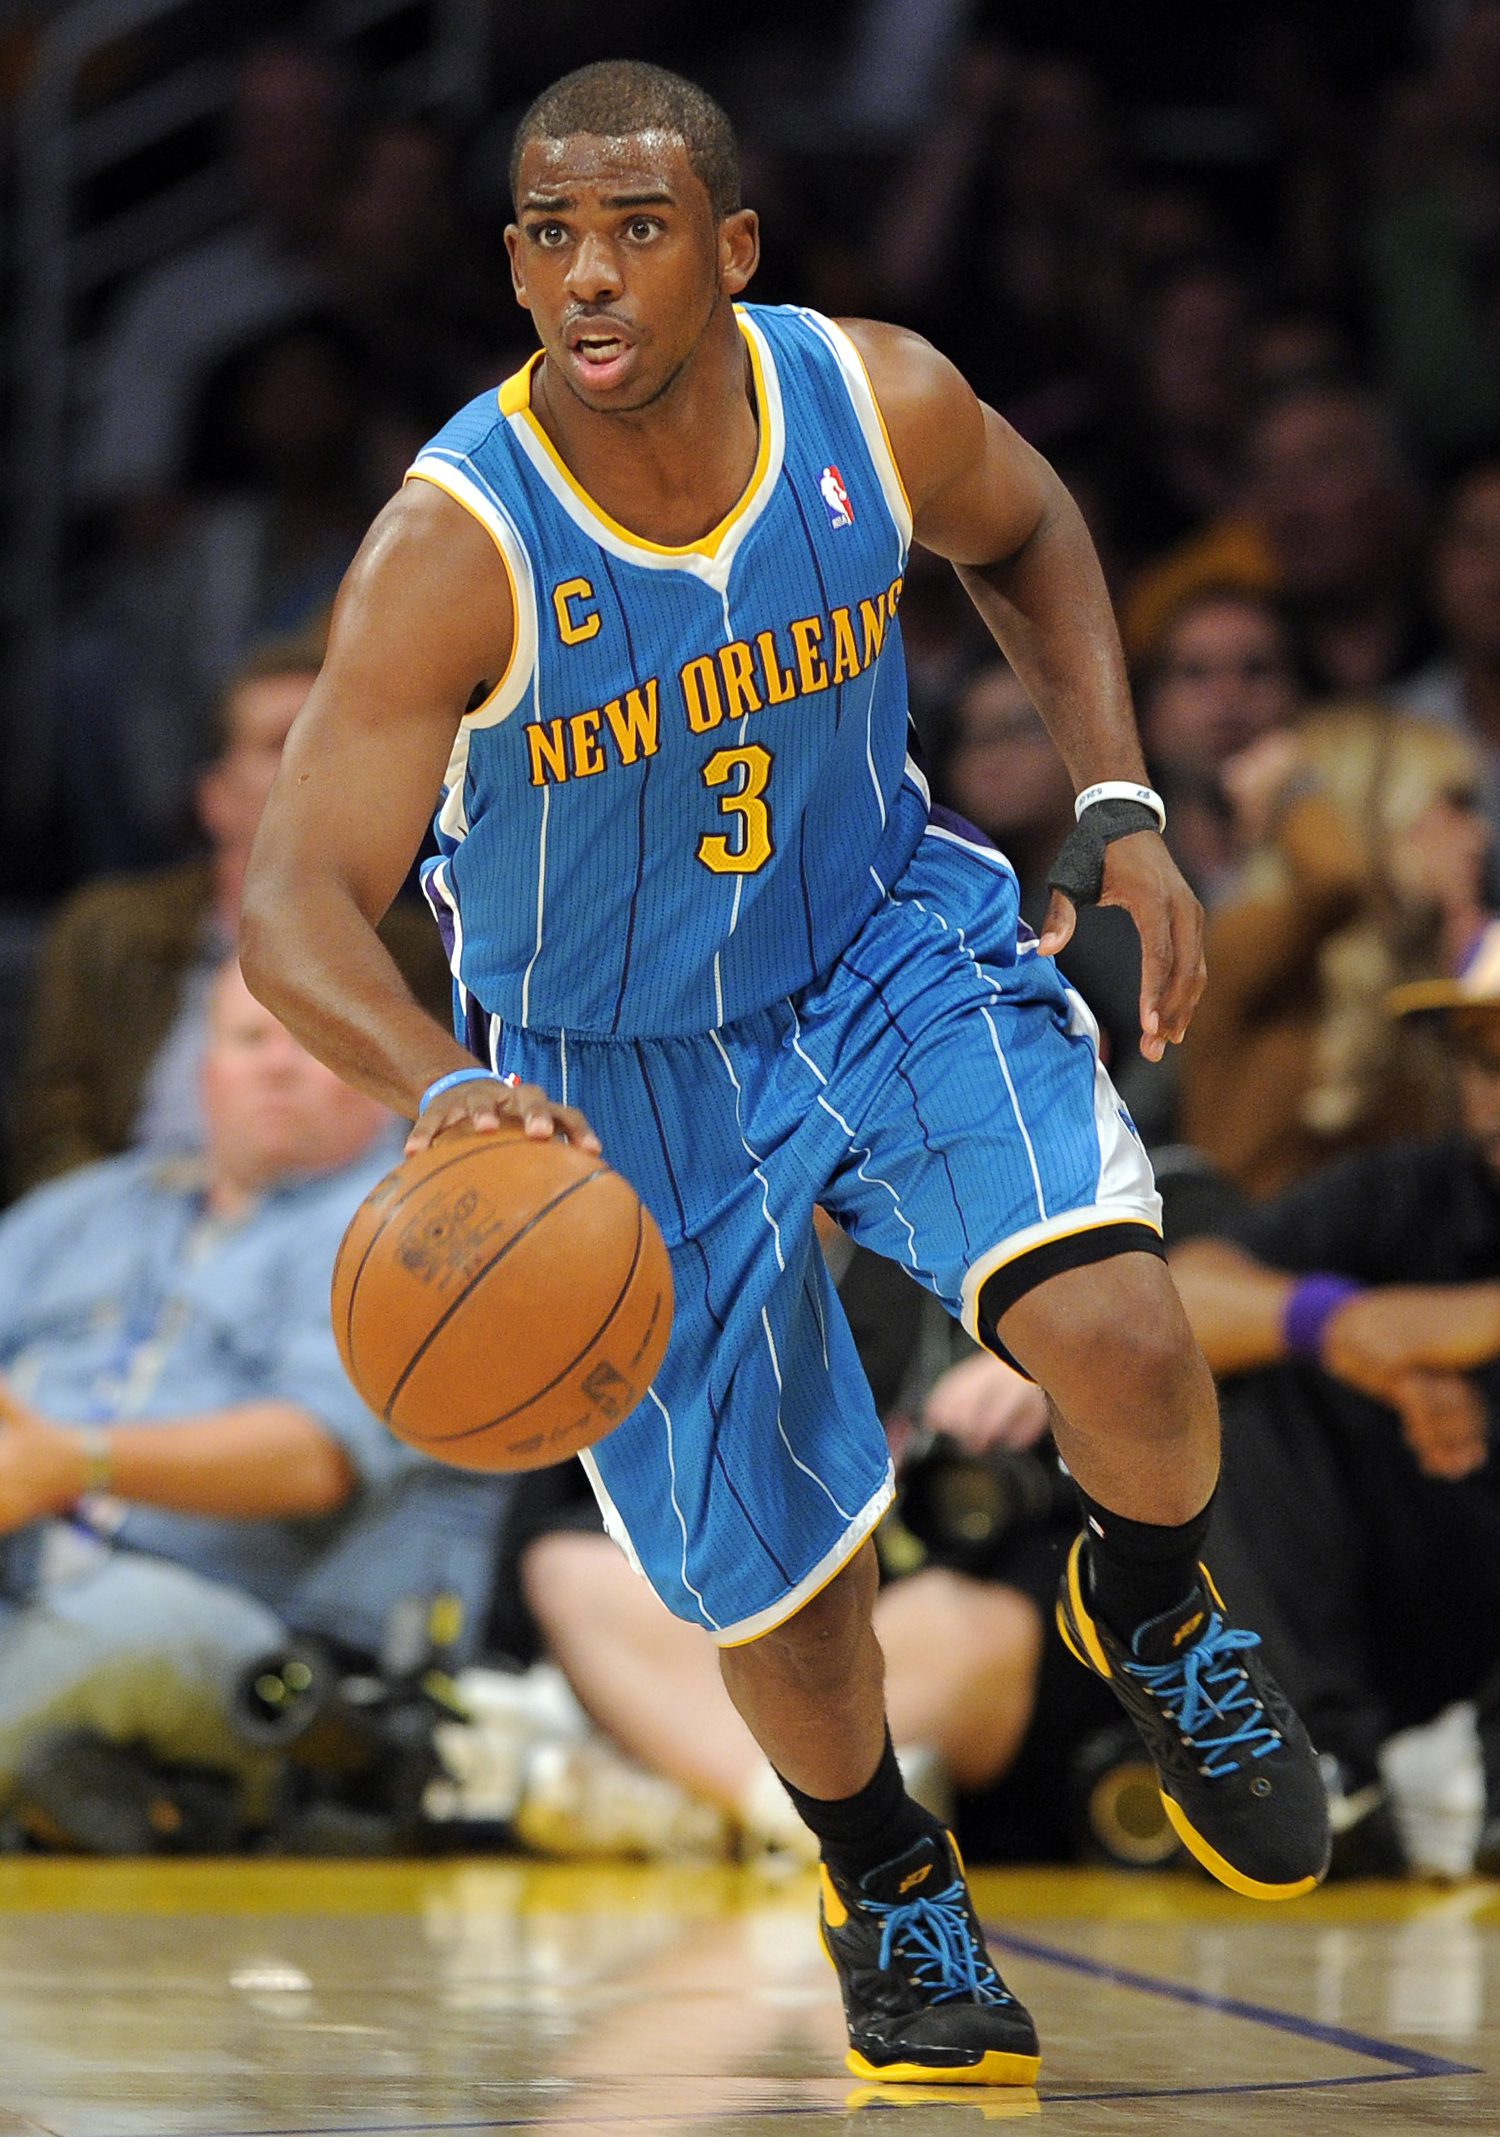 Chris Paul | Basketball Wiki | FANDOM powered by Wikia